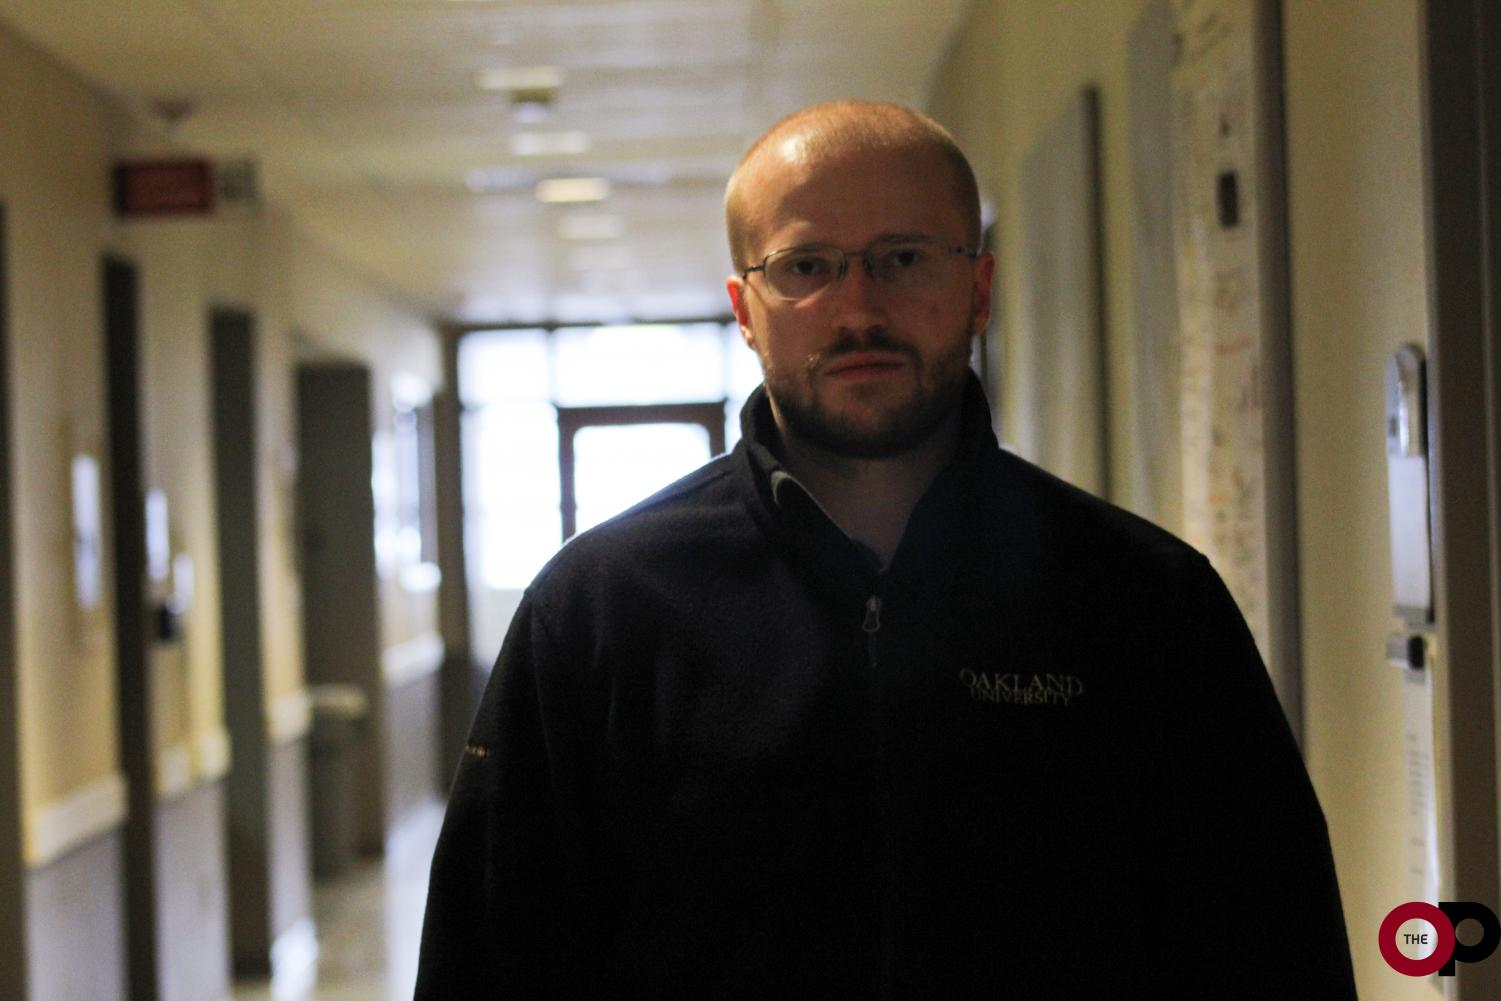 Dr. Alexander Rusakov, assistant professor of chemistry, just started his career at OU this semester.